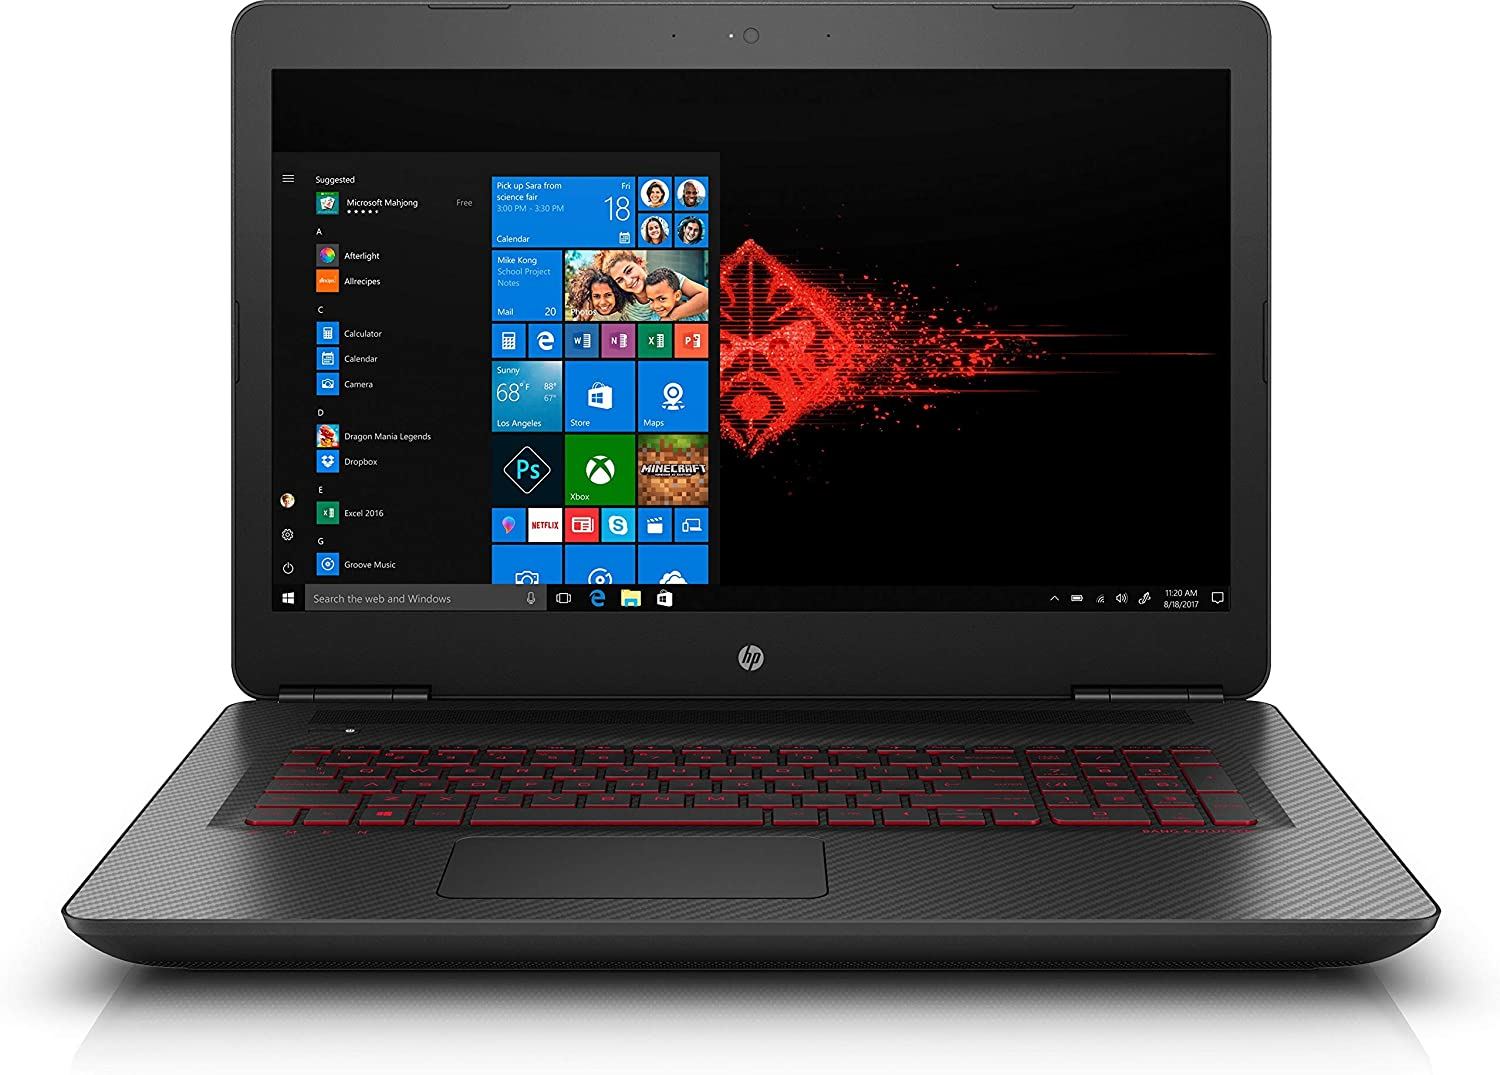 HP OMEN 17.3-inch Gaming Laptop: Core i7-7700HQ, NVIDIA GeForce GTX 1050 Ti, 16GB RAM, 256GB SSD + 1TB HDD, Full HD